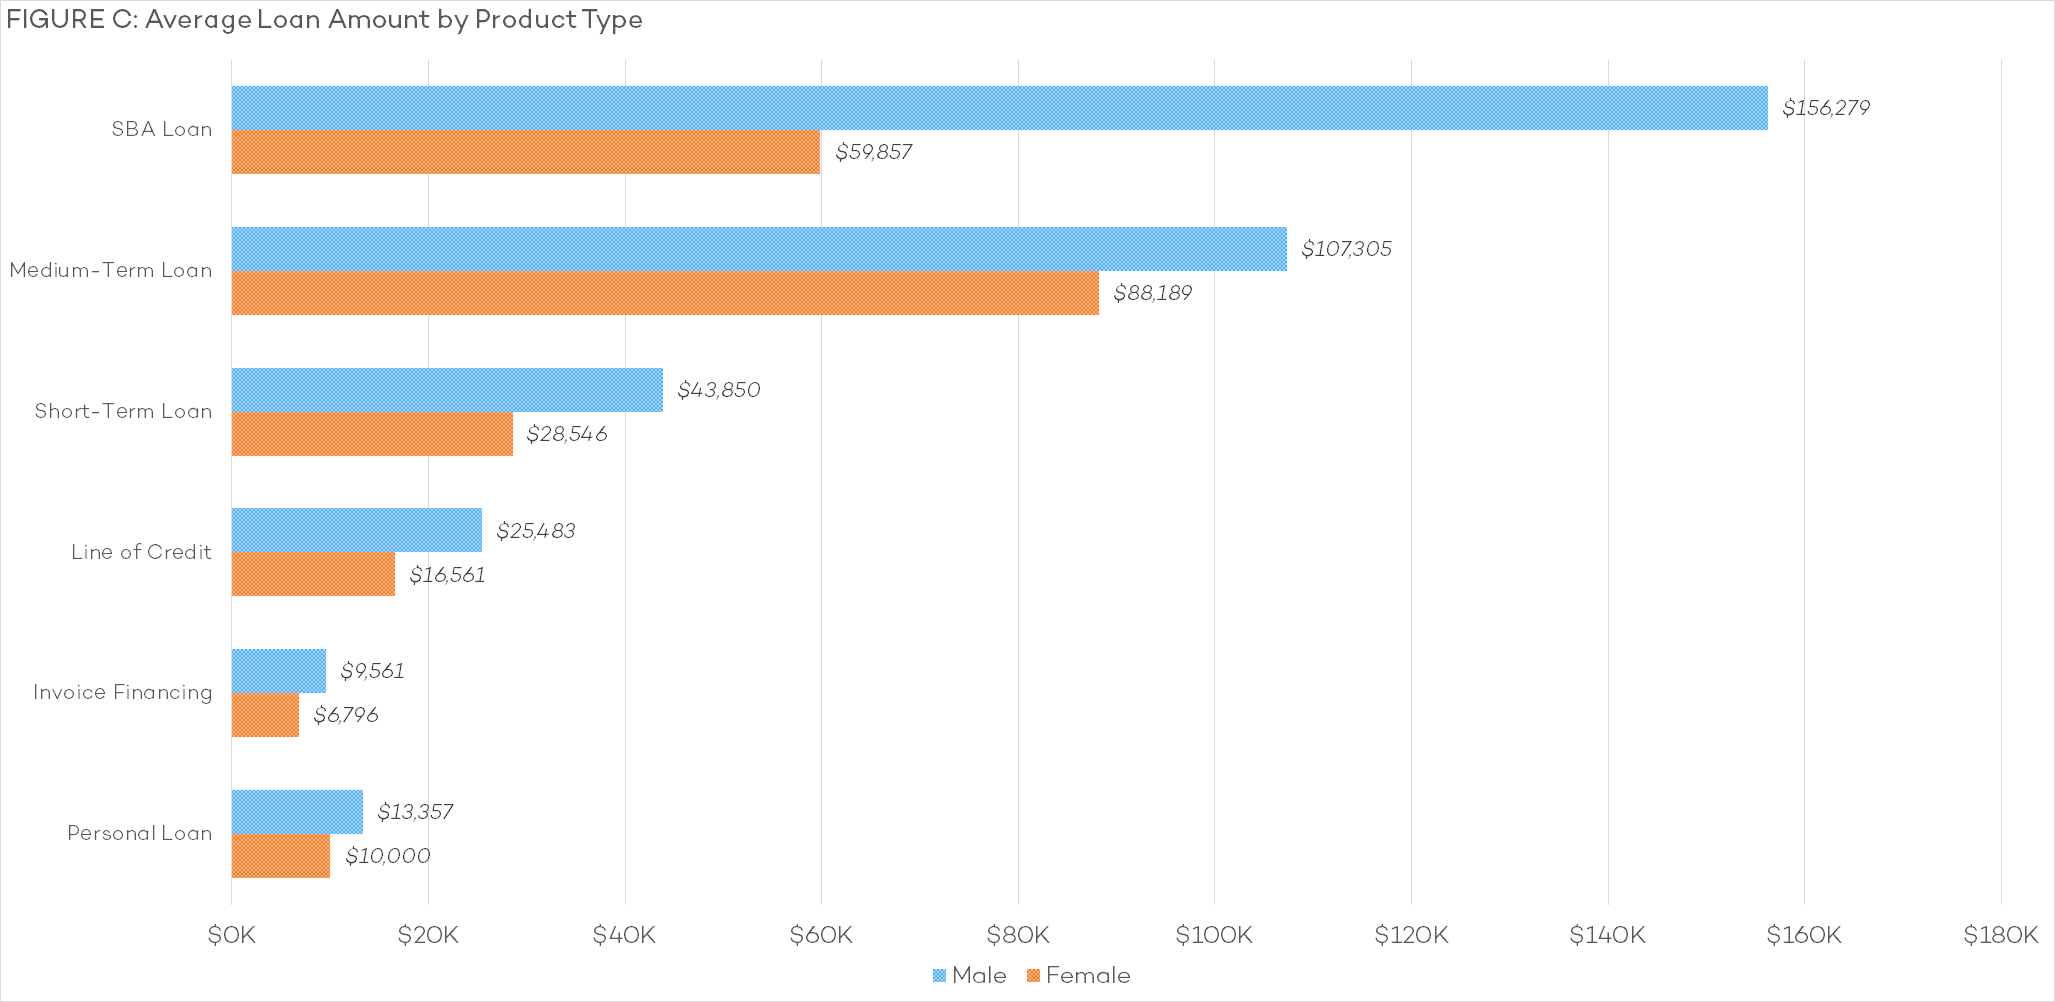 C - Average Loan Amount by Product Type